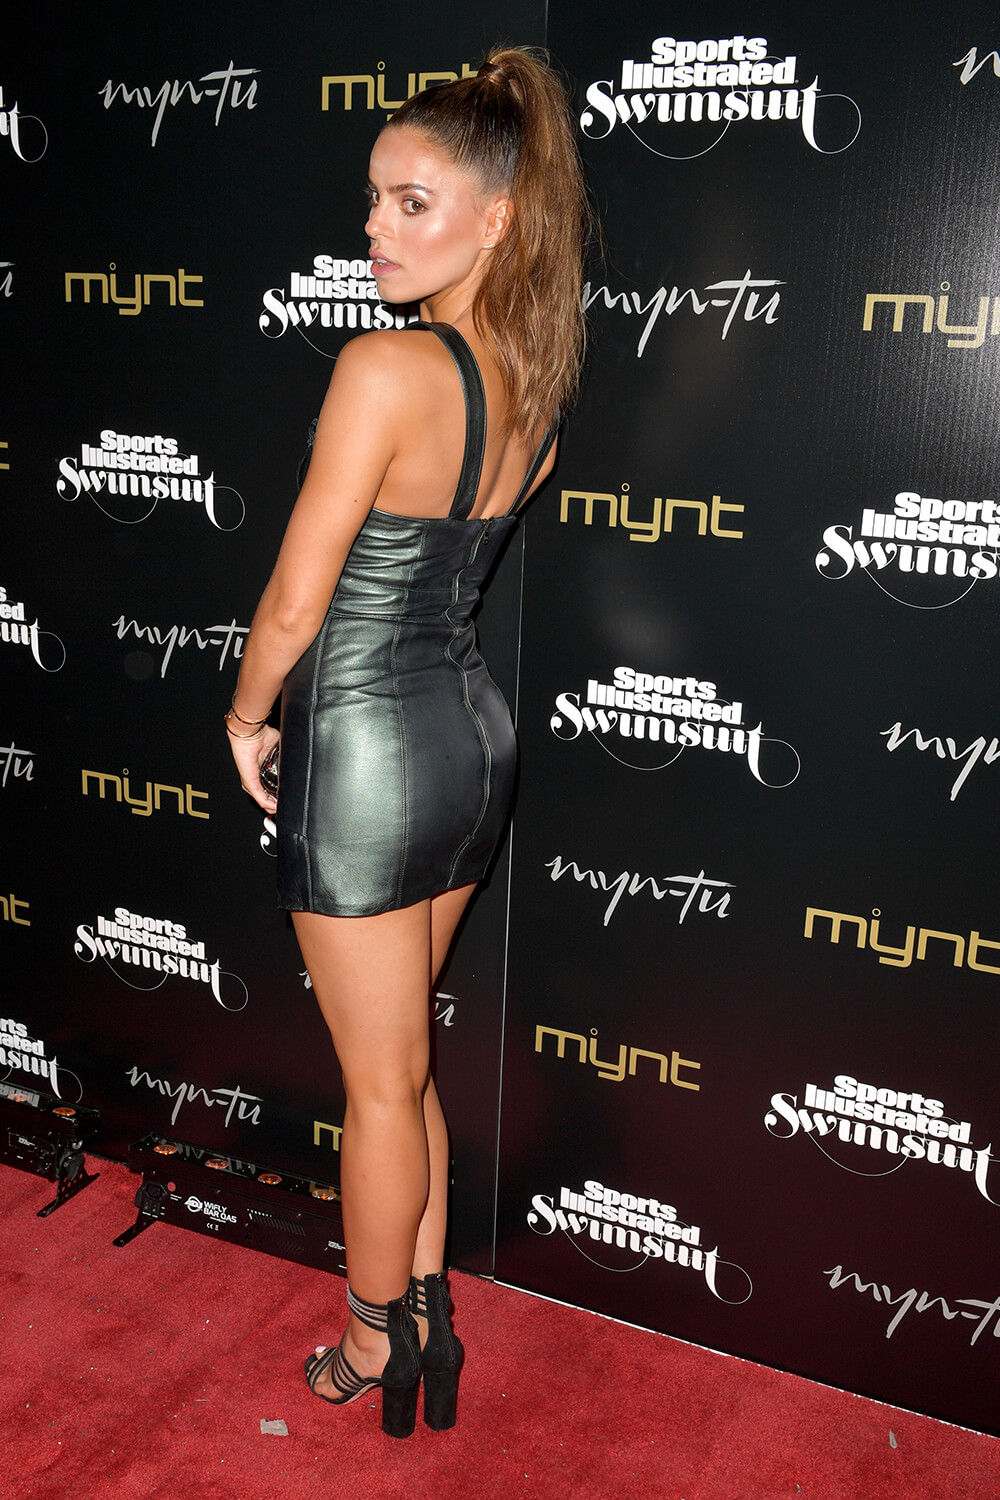 Brooks Nader attends Sports Illustrated Swimsuit issue launch celebration